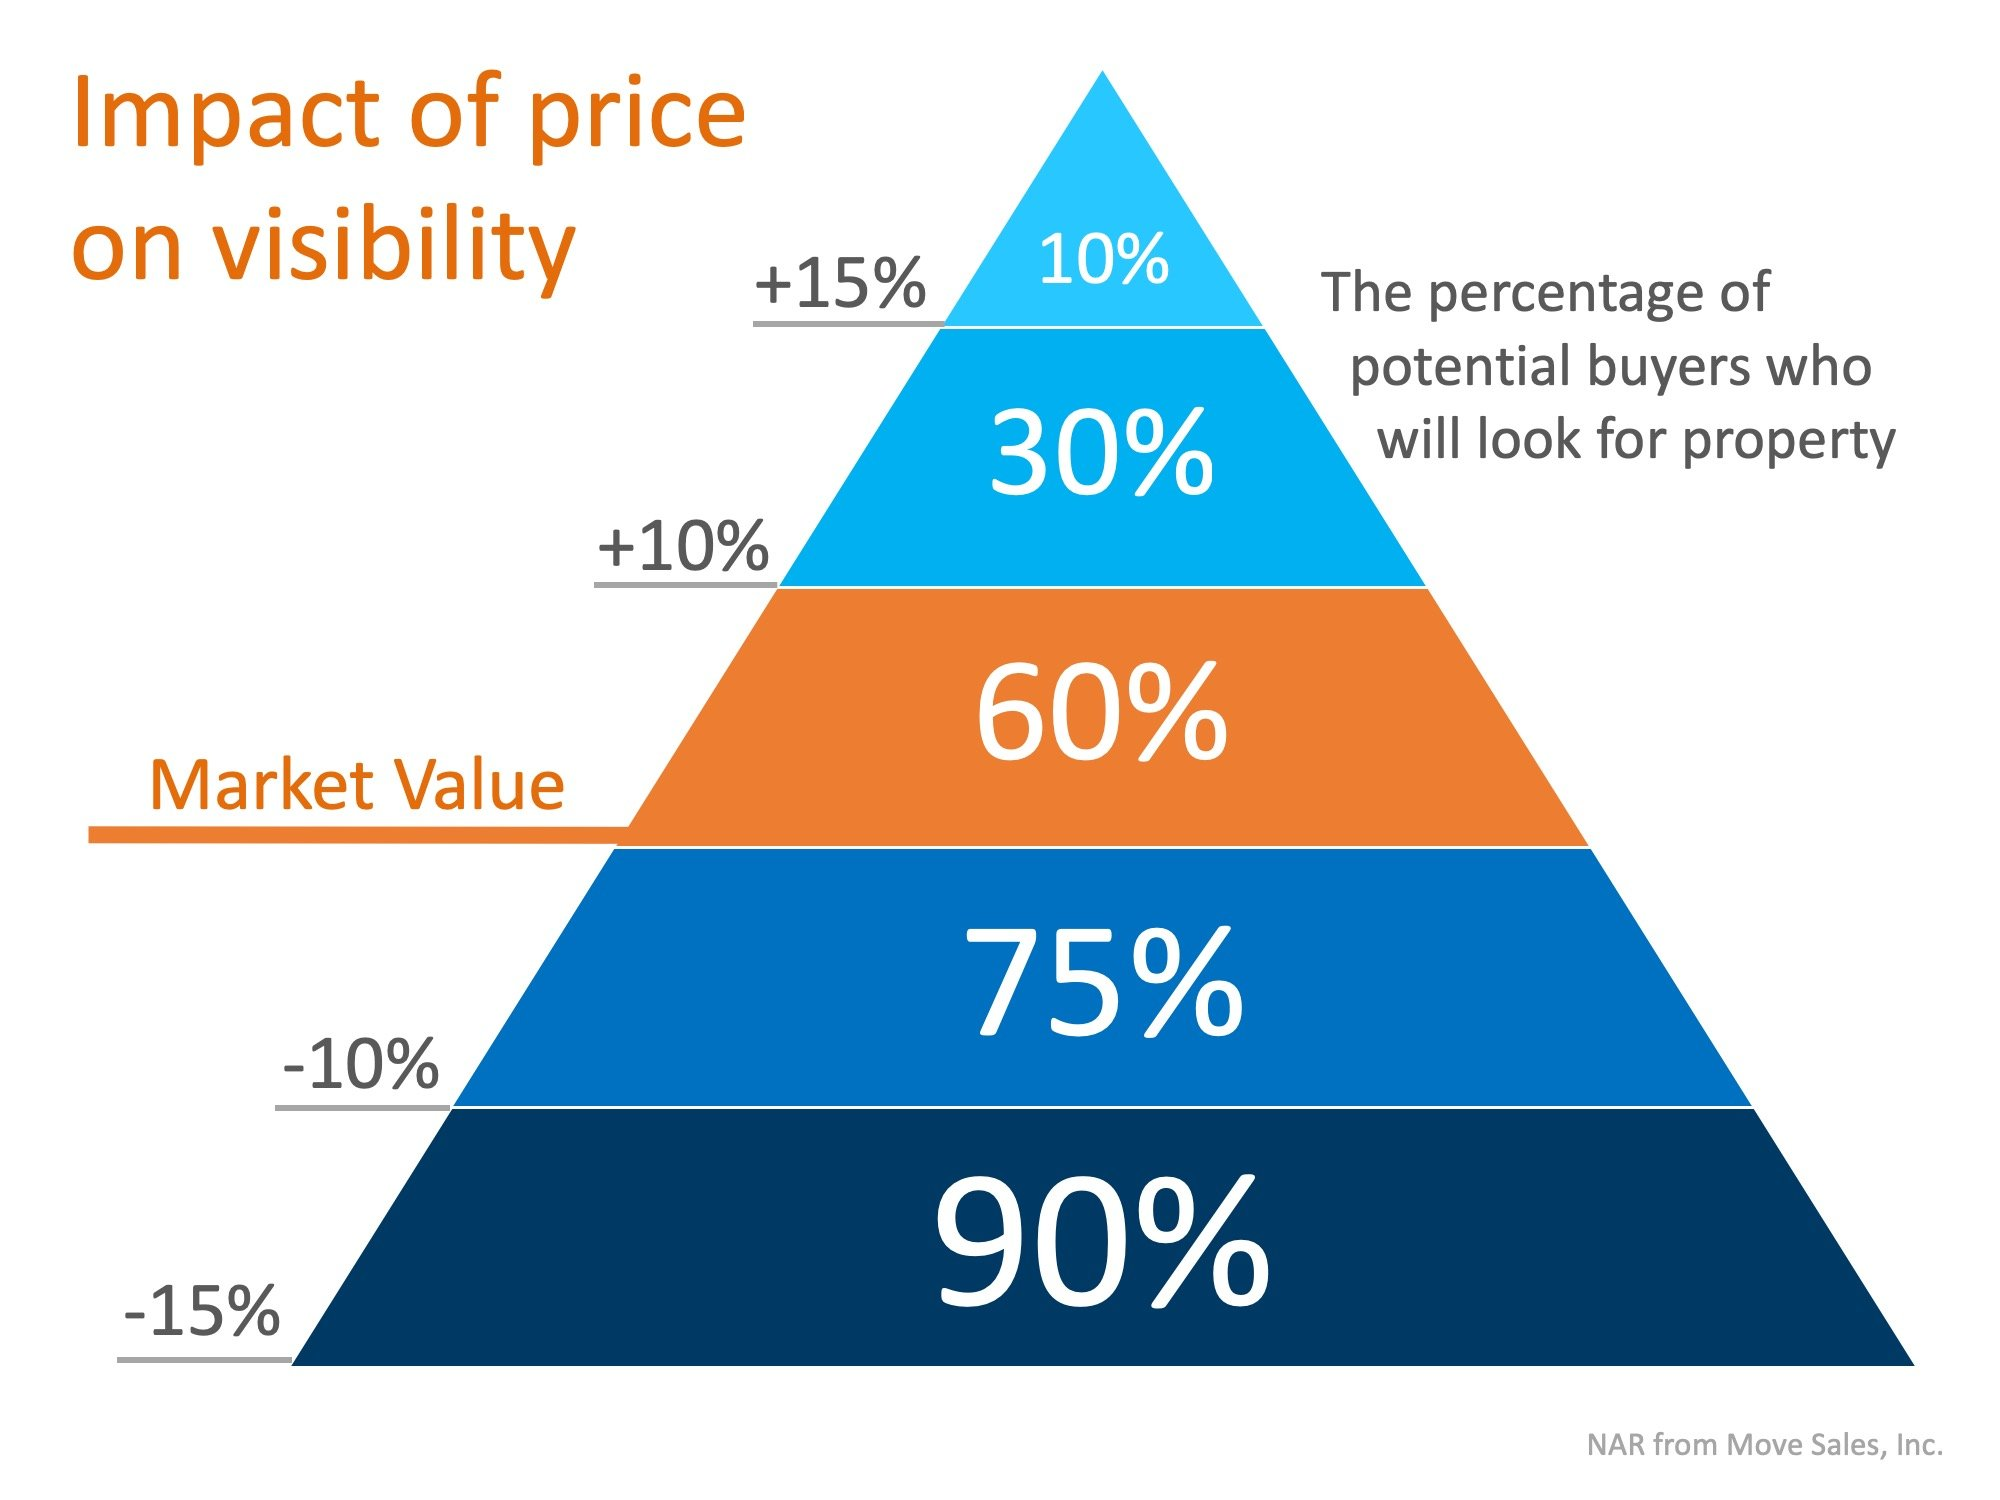 Is Your House Priced To Sell Immediately (PTSI)? | Simplifying The Market